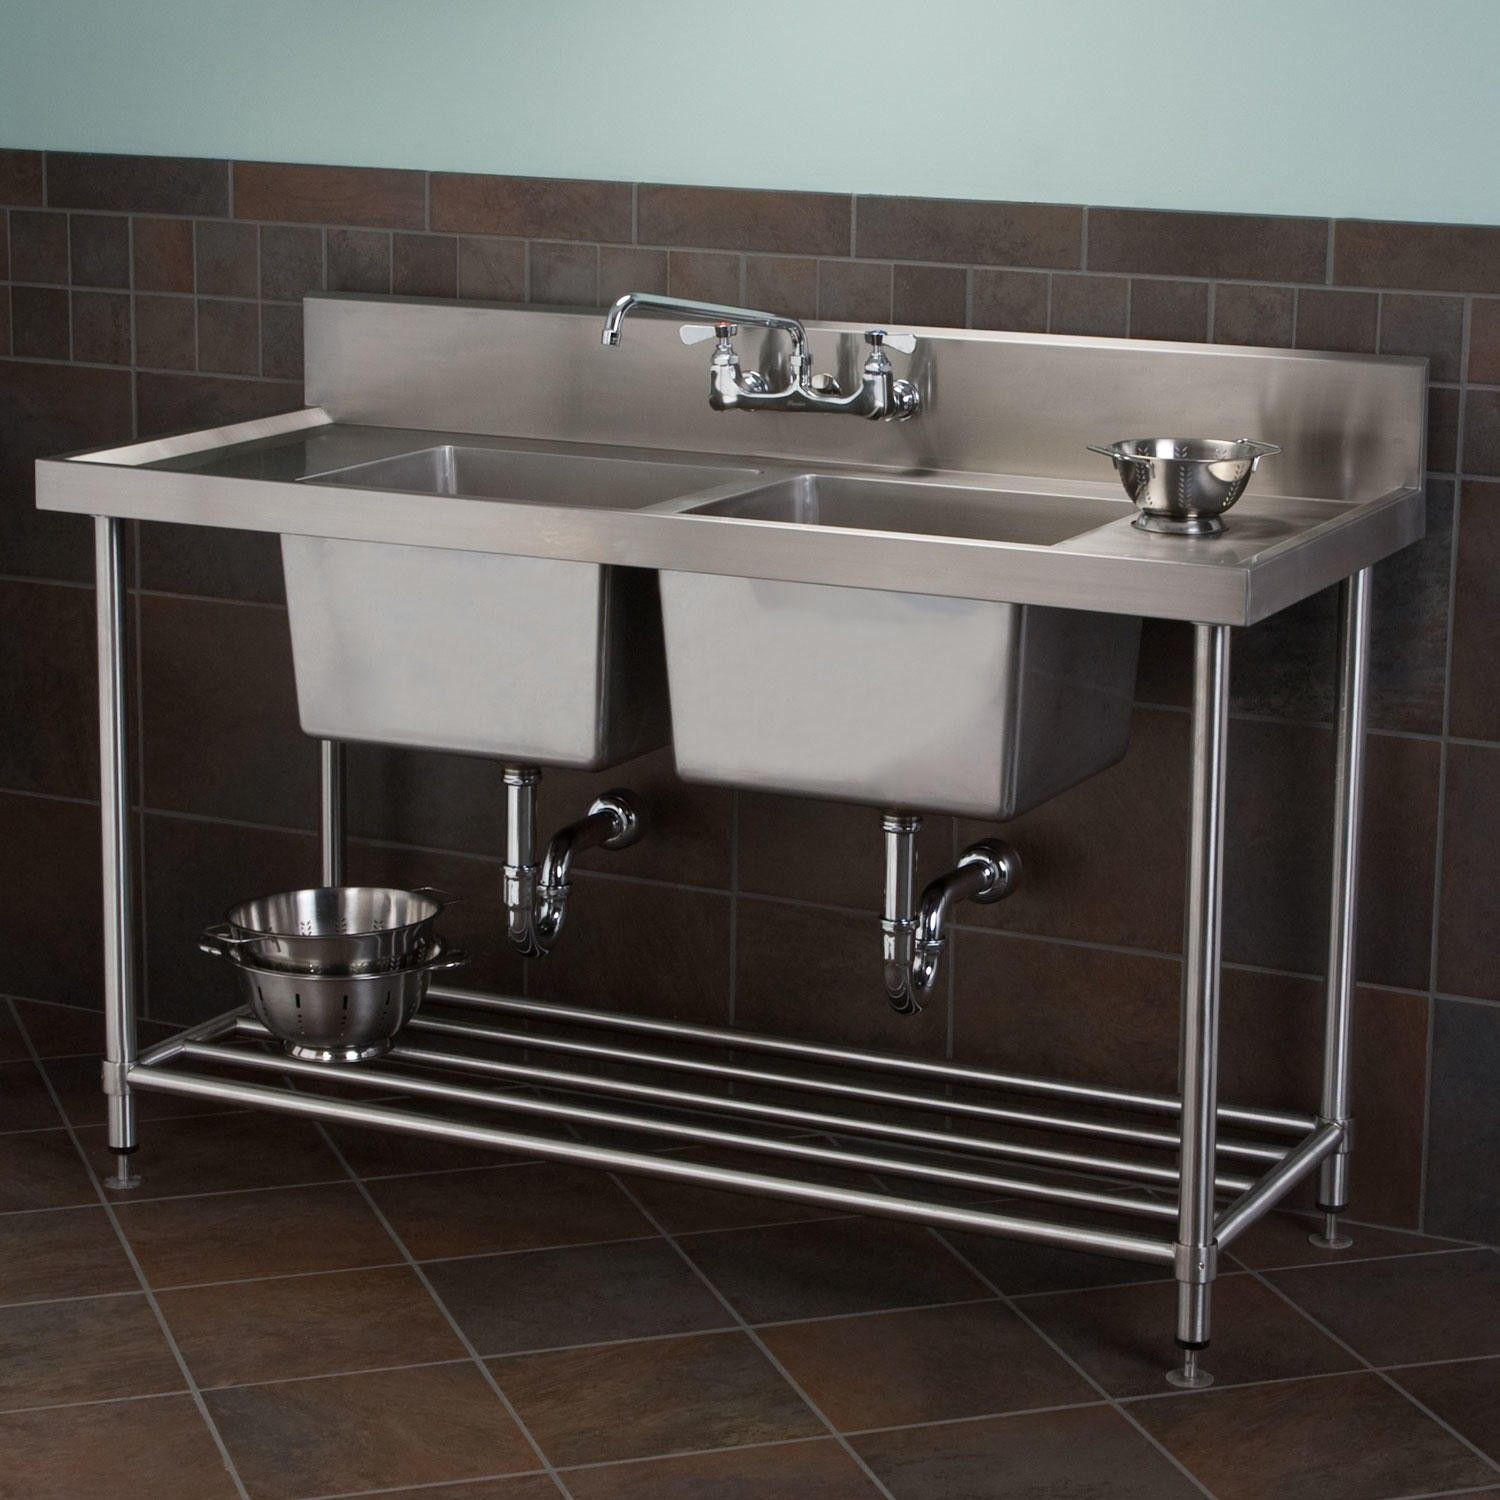 Stainless Steel Double Sink Stainless Steel Double Bowl Commercial Console Sink With